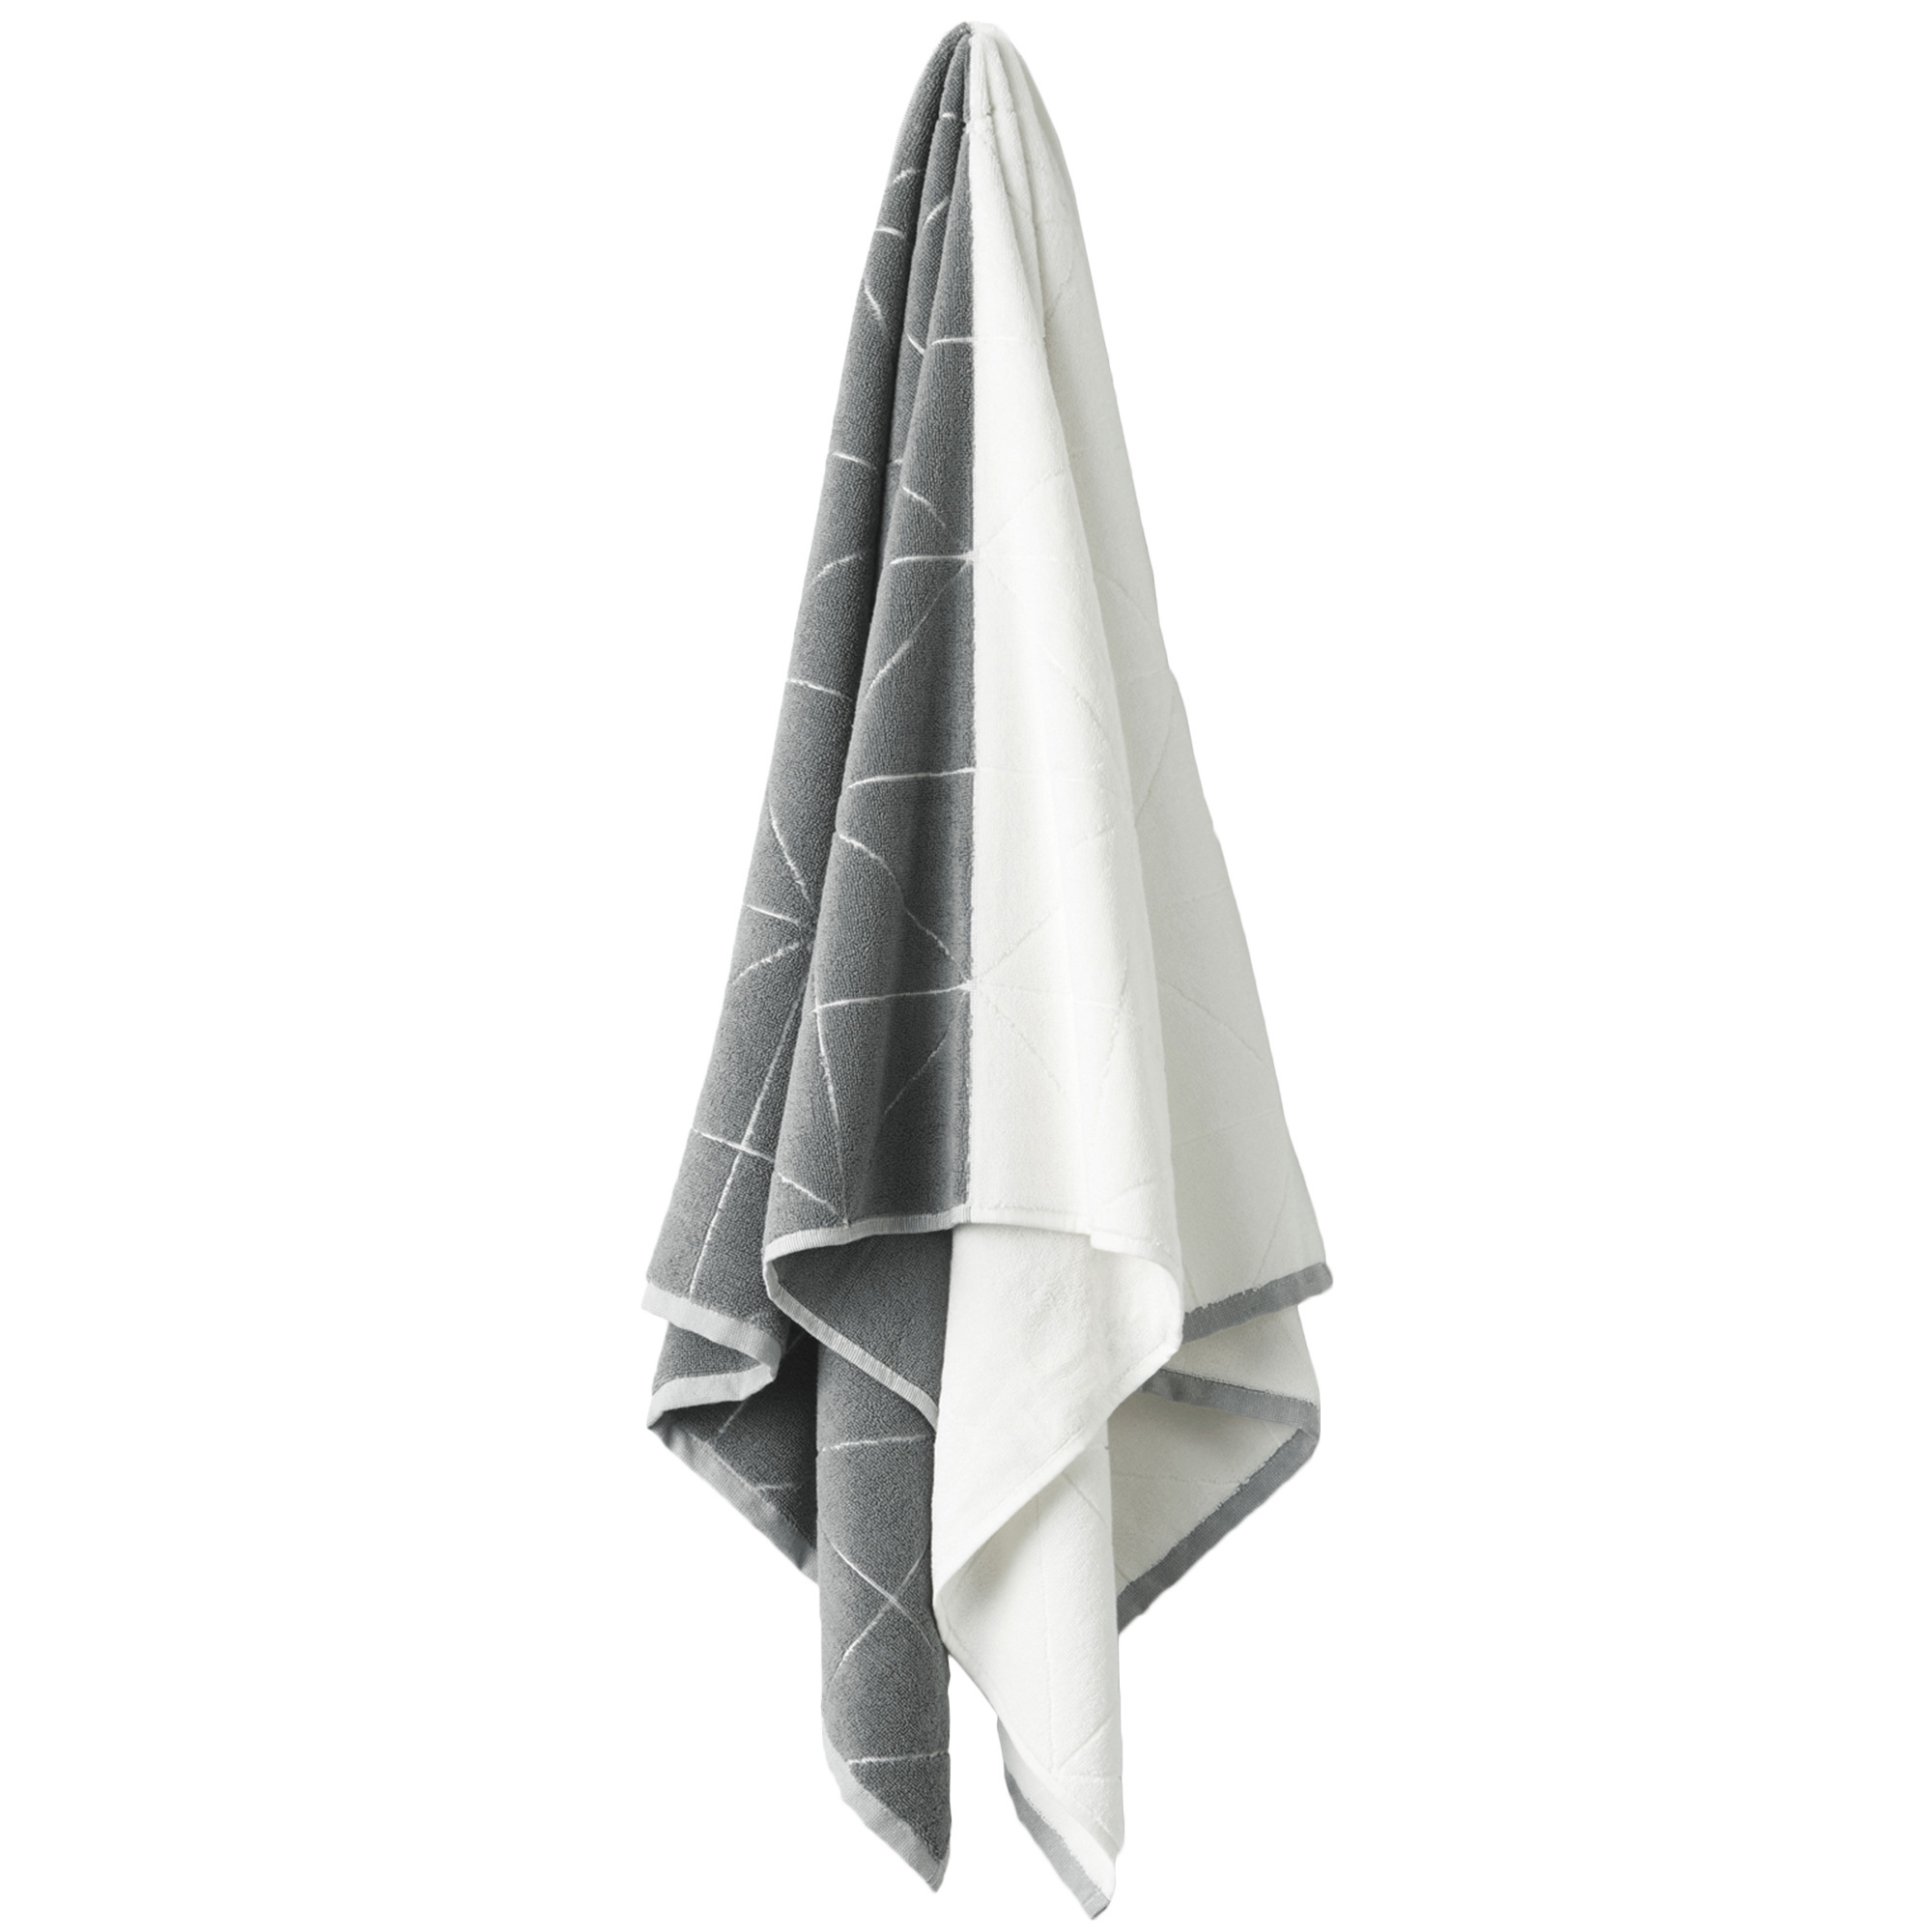 NEW-Smoke-amp-White-Duet-Bath-Collection-Aura-By-Tracie-Ellis-Bath-Towels